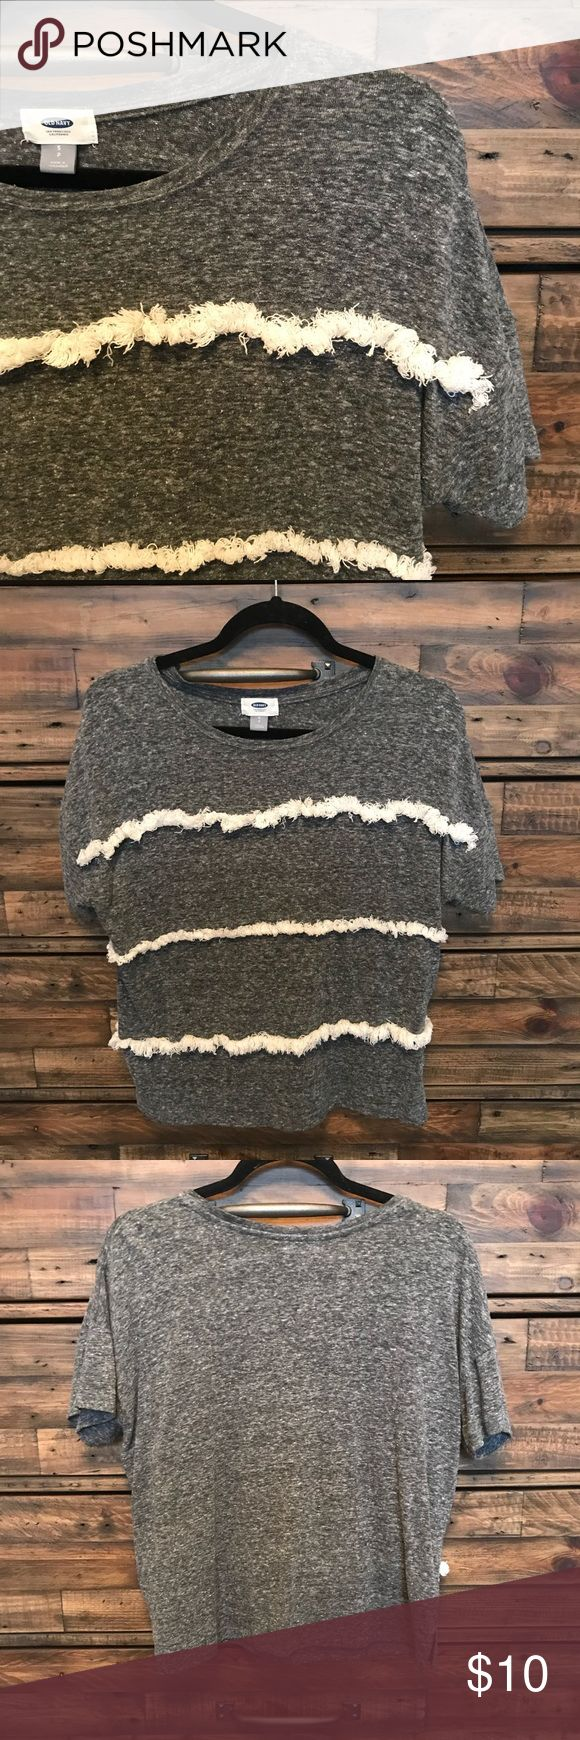 """Old Navy Short Sleeve Top Gently used - worn a few times - Old Navy frilly pattern short sleeve top - comfy fit (goes great w/ a bralette) - from being washed some of the """"frills"""" don't fall flat - offers welcome! Old Navy Tops Tees - Short Sleeve"""